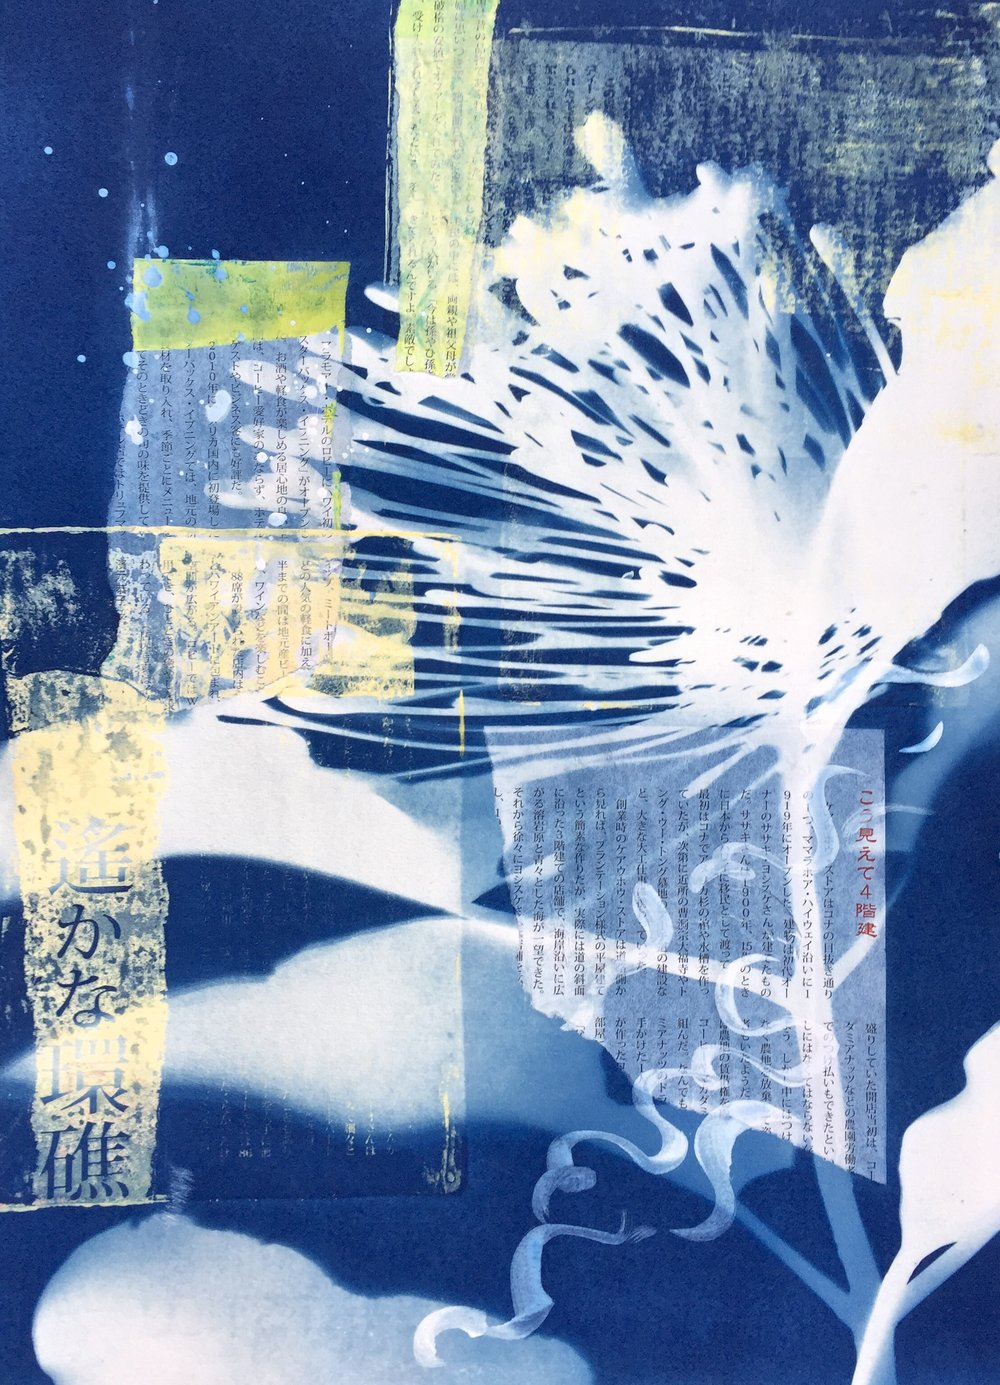 Hana Hou Shadows  | cyanotype, collage, and monoprint, framed | 16 x 20 | SOLD